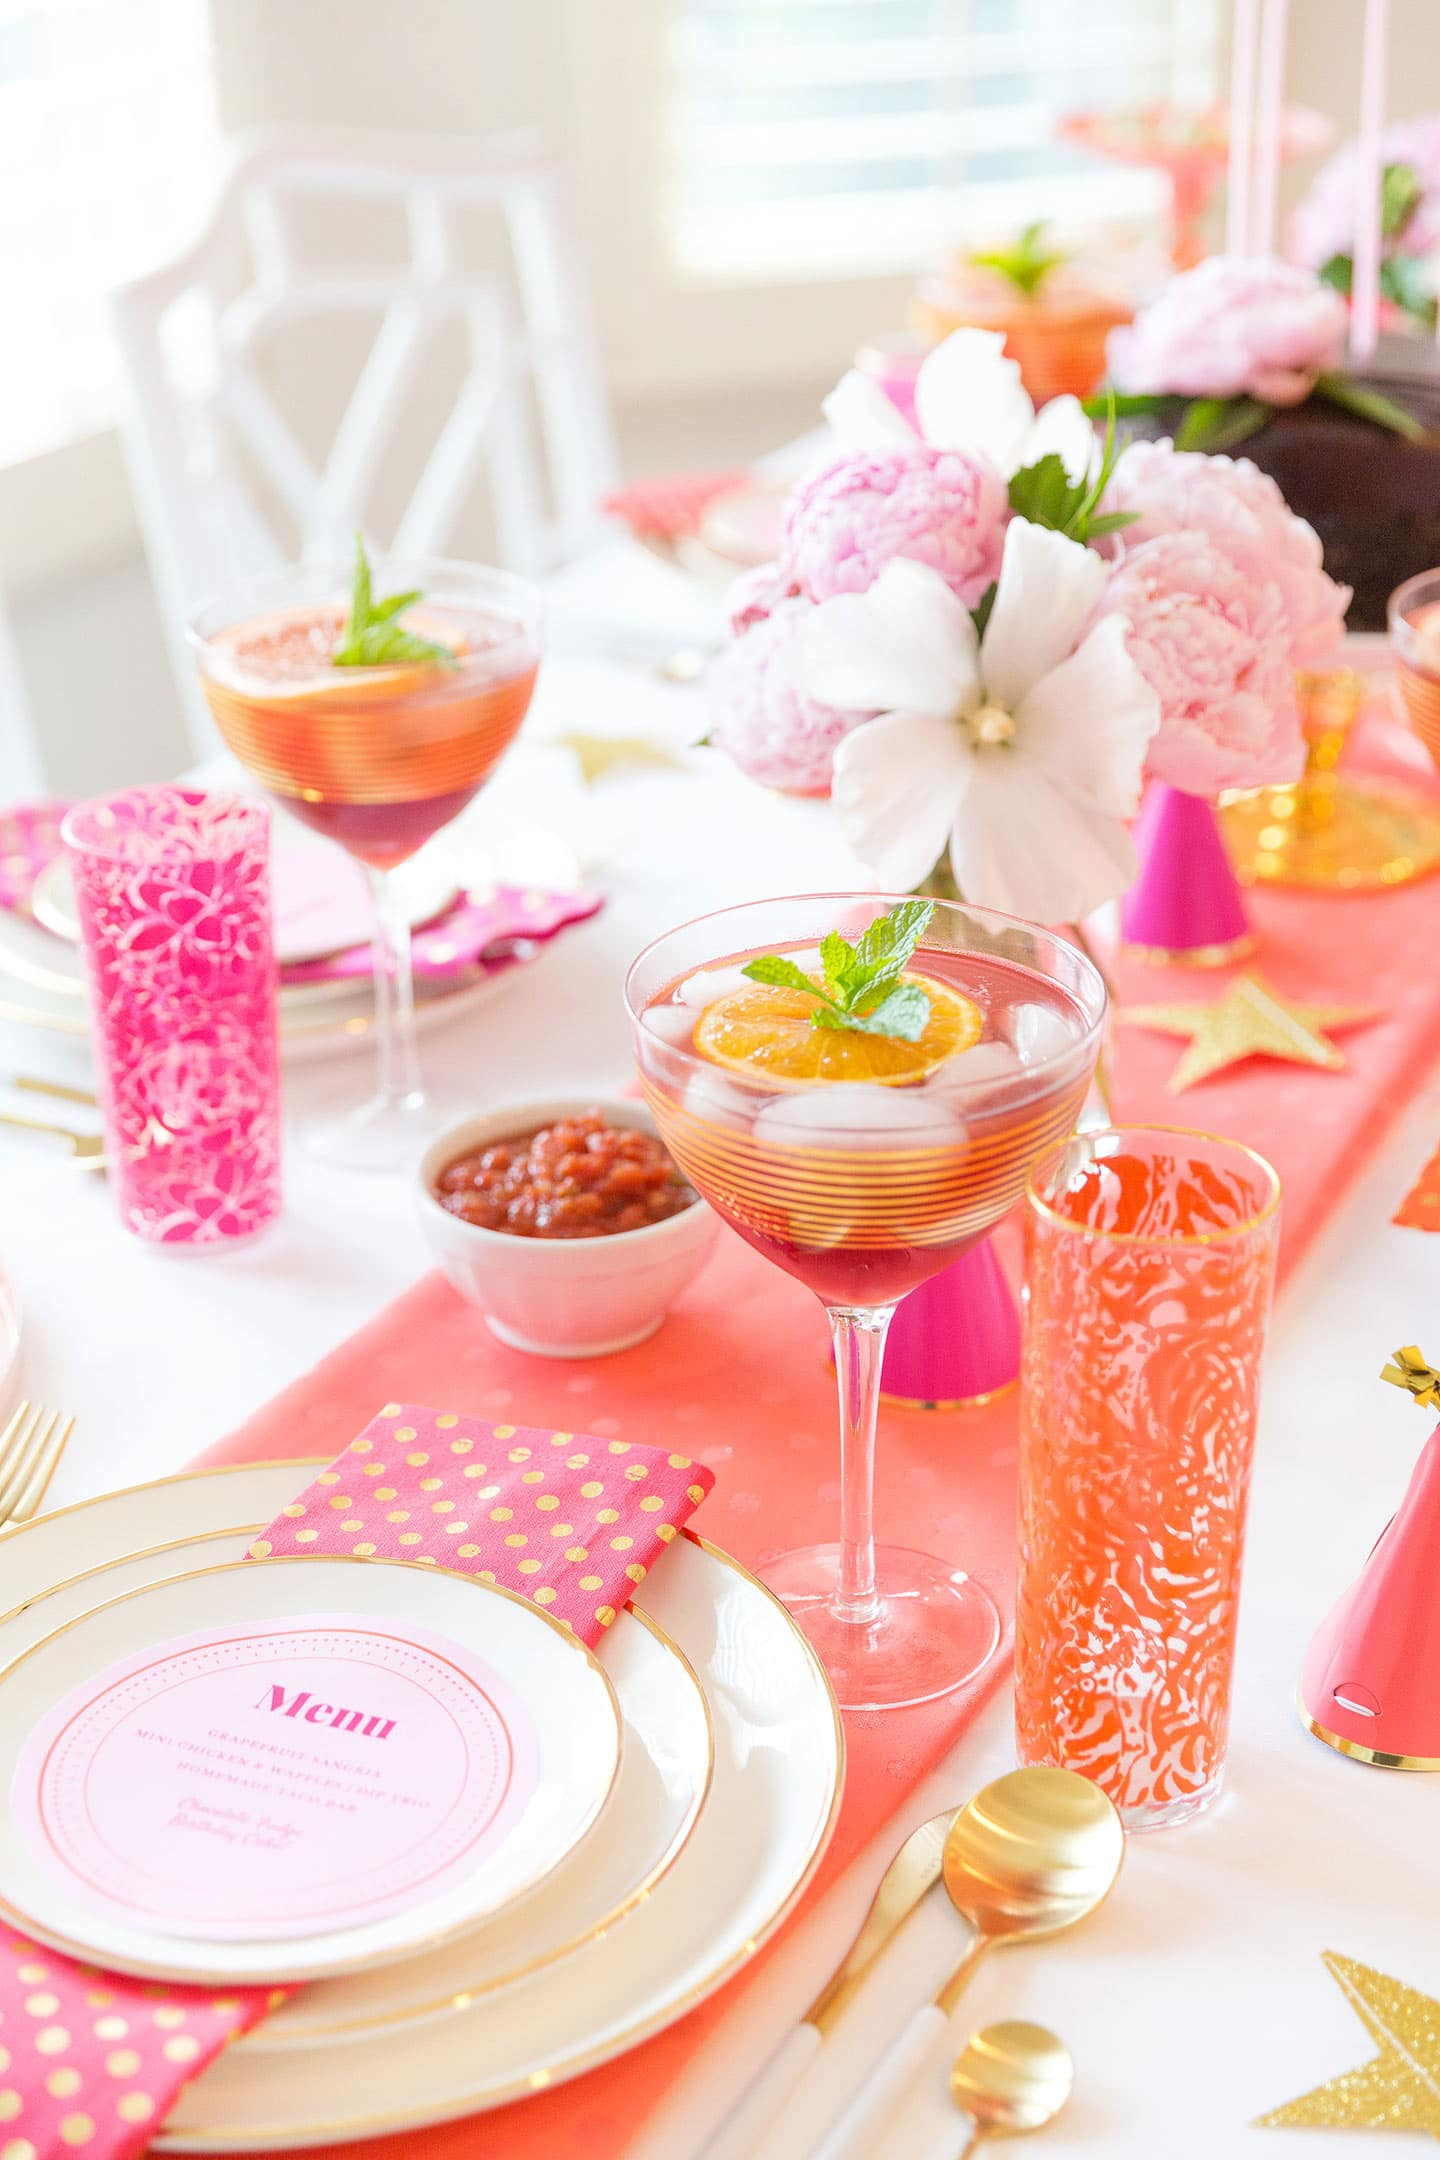 Best ideas about Adult Birthday Party Themes . Save or Pin Creative Adult Birthday Party Ideas for the Girls Now.